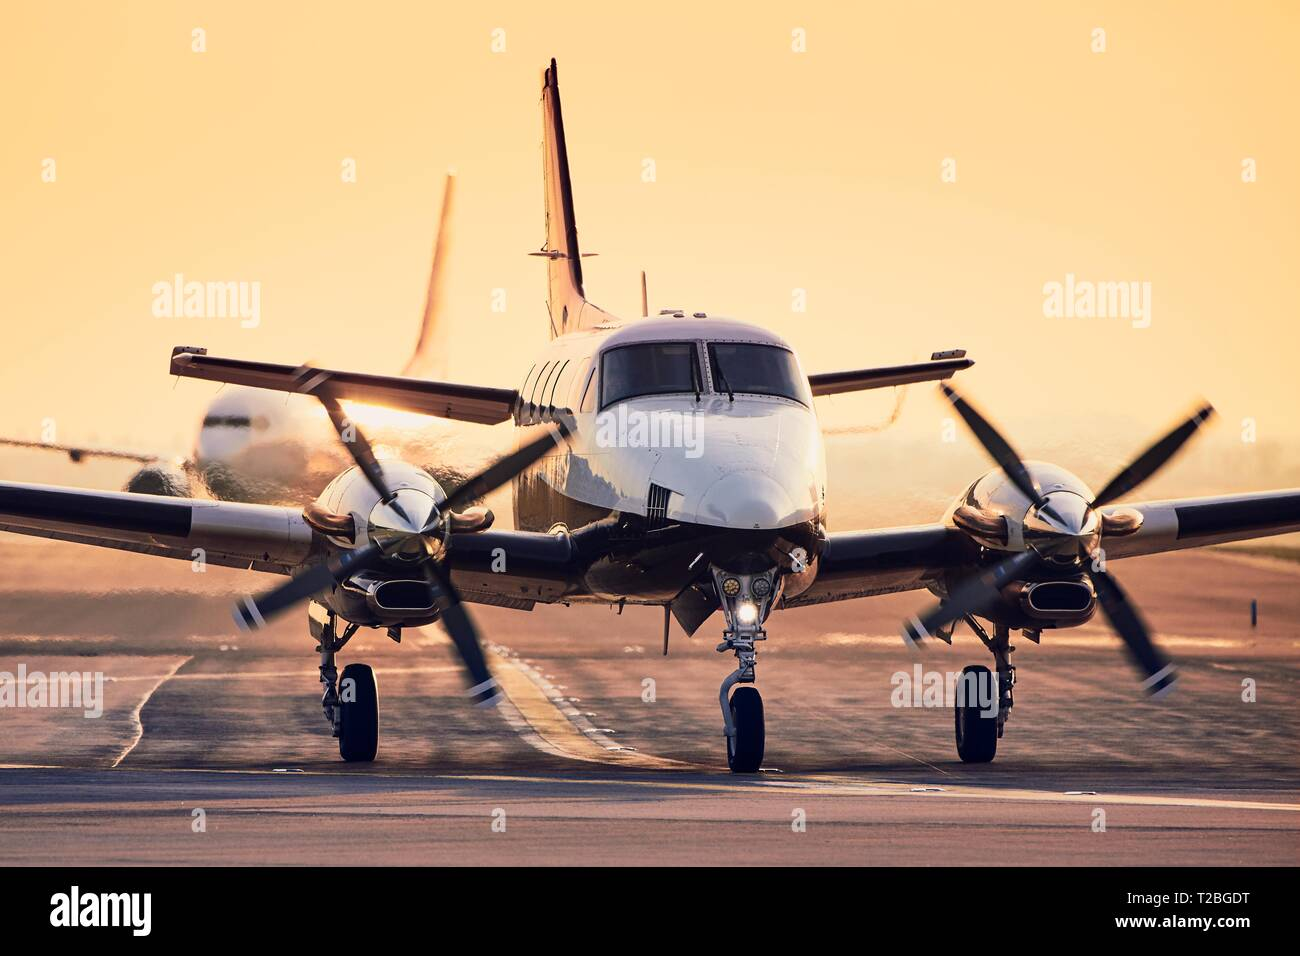 Modern propeller plane against commercial airplane on runway. Traffic at airport during sunset. - Stock Image